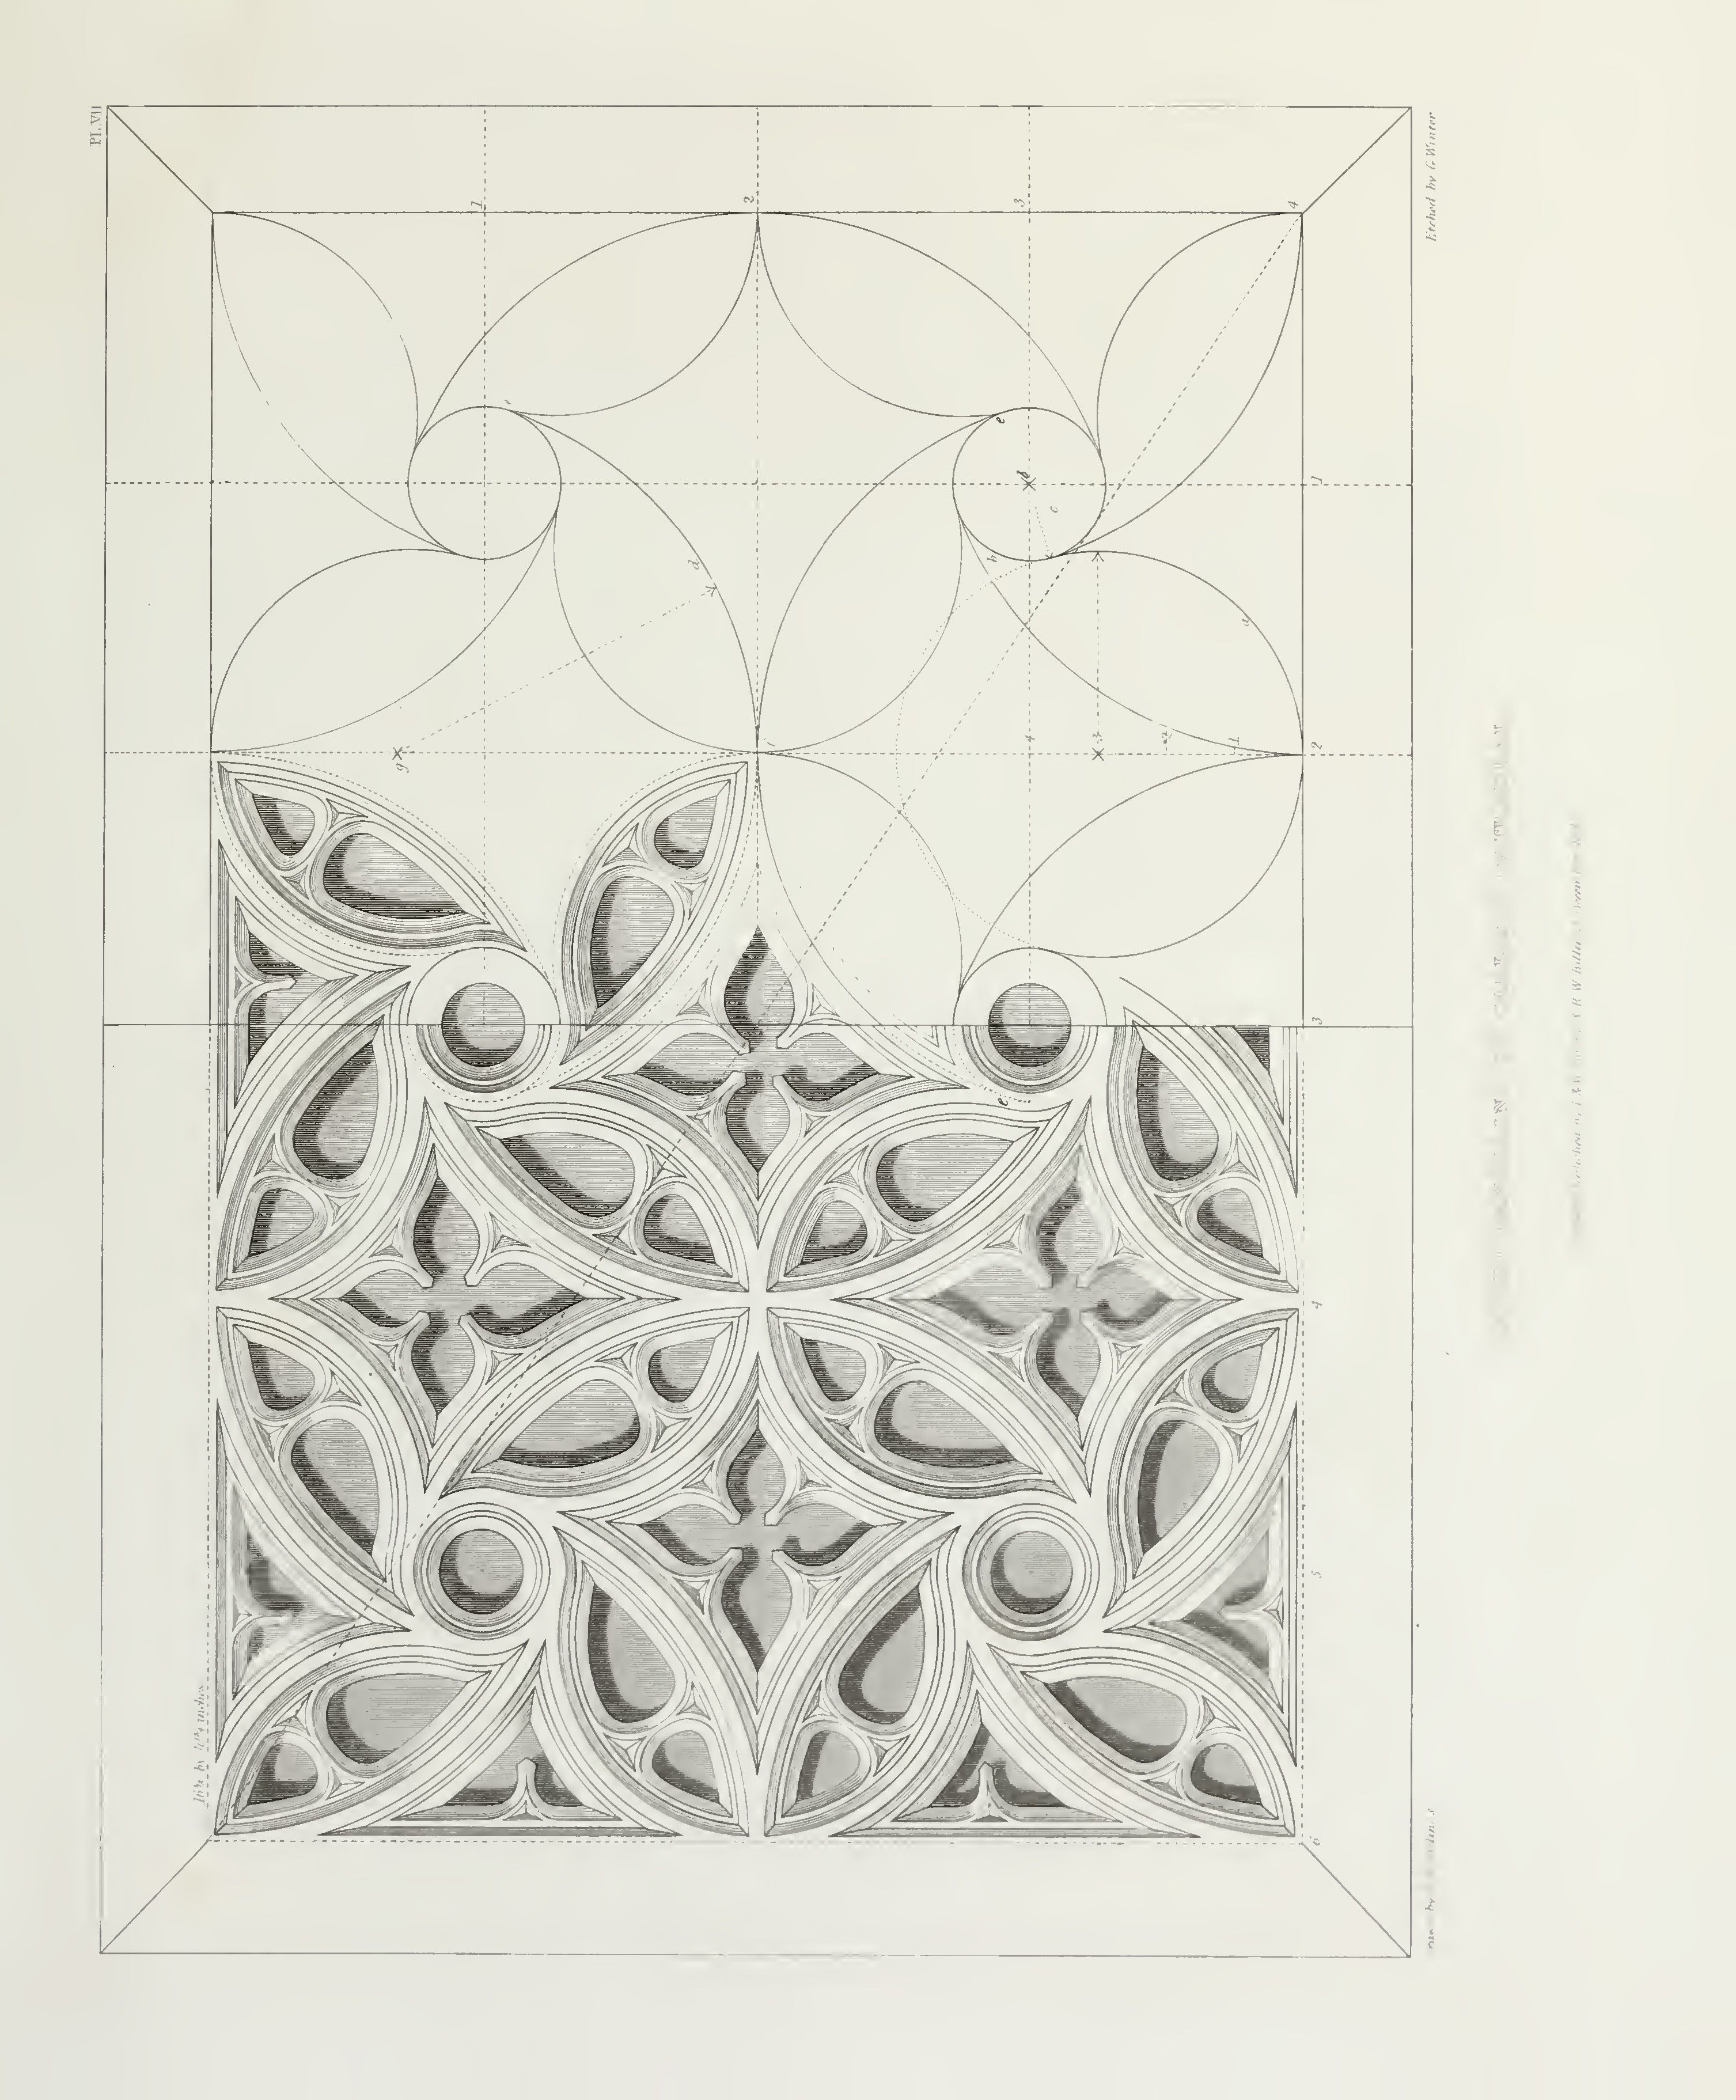 Architectural Drawing Patterns In 2020 Geometric Pattern Design